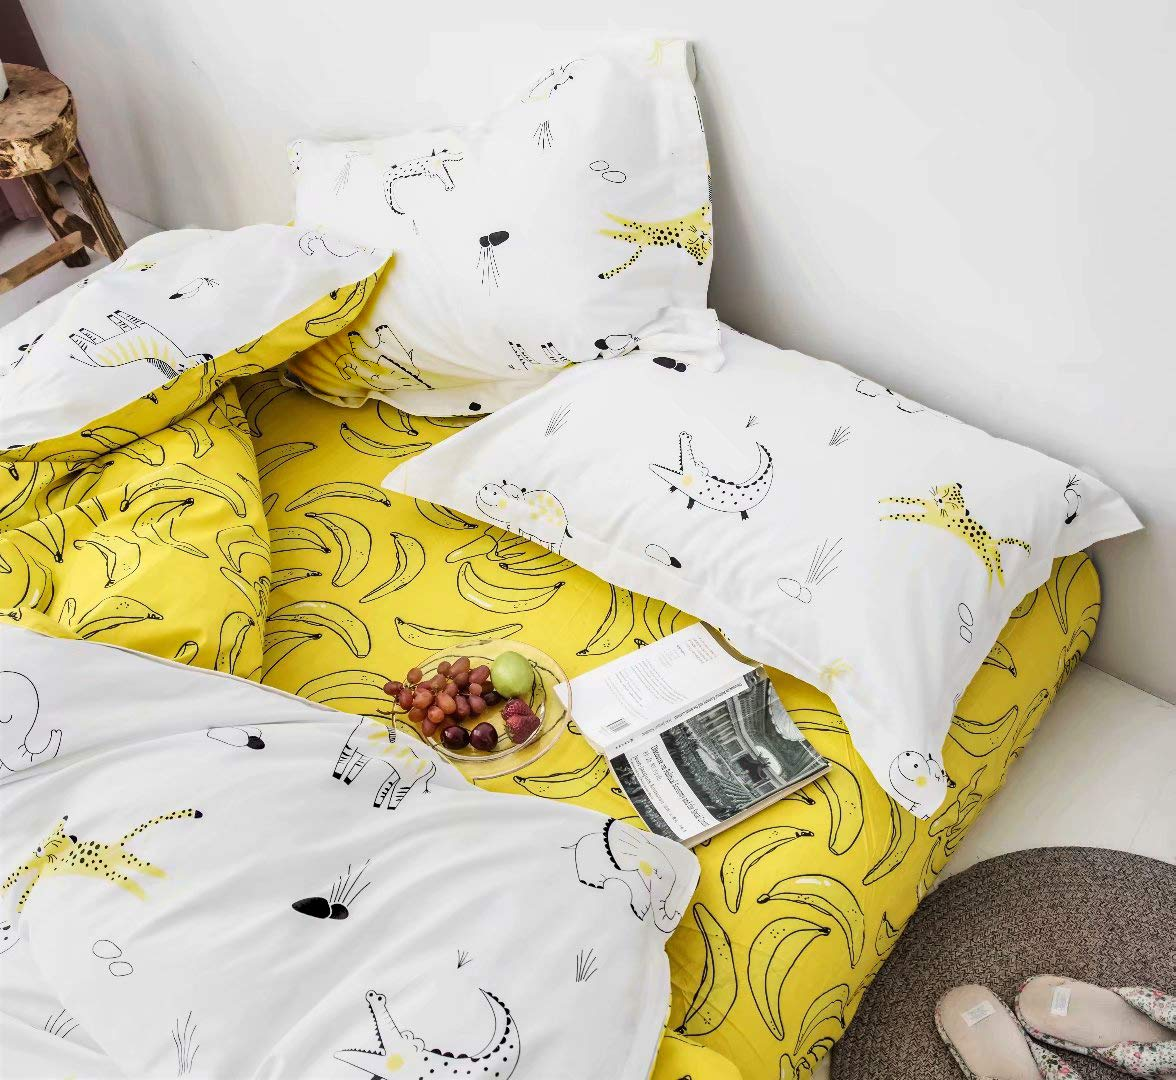 Hypoallergenic Soft Jumeey Duvet Cover Bear Print 3 Pieces Animal Kids Bedding Sets Twin Yellow for Boys Girls 100/% Cotton Hotel Quality Bedding Collection